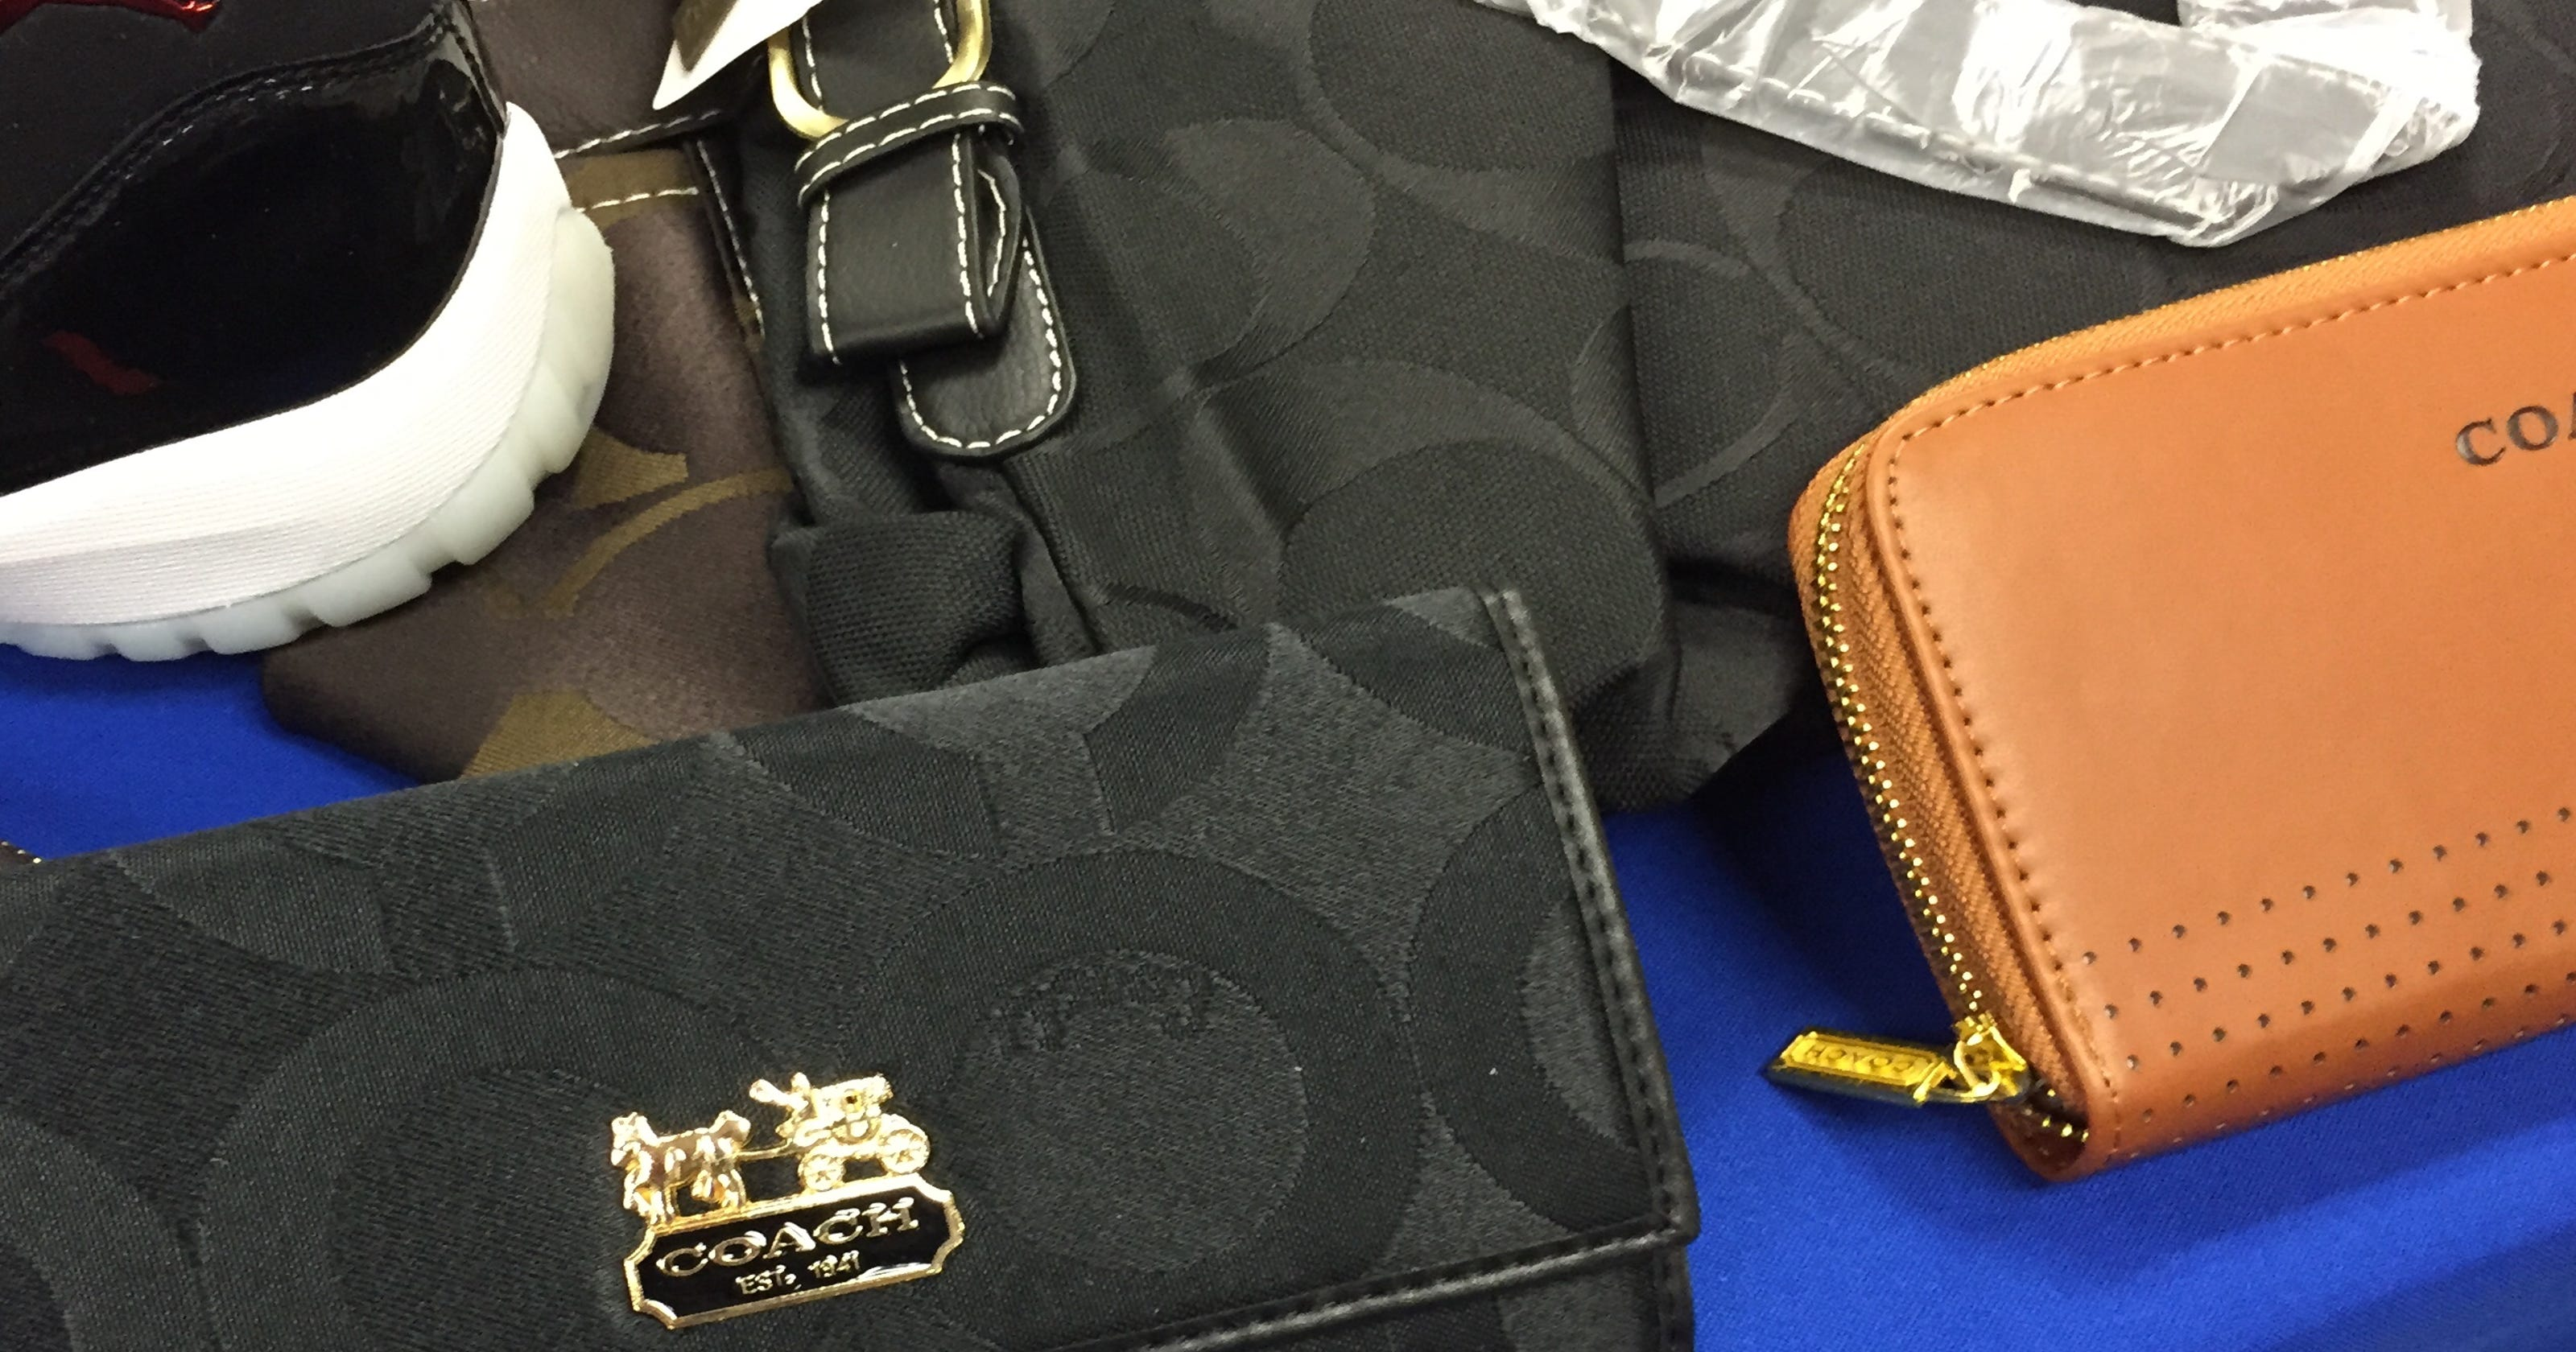 80cde26f70762 Shoppers warned about fake websites selling knockoffs